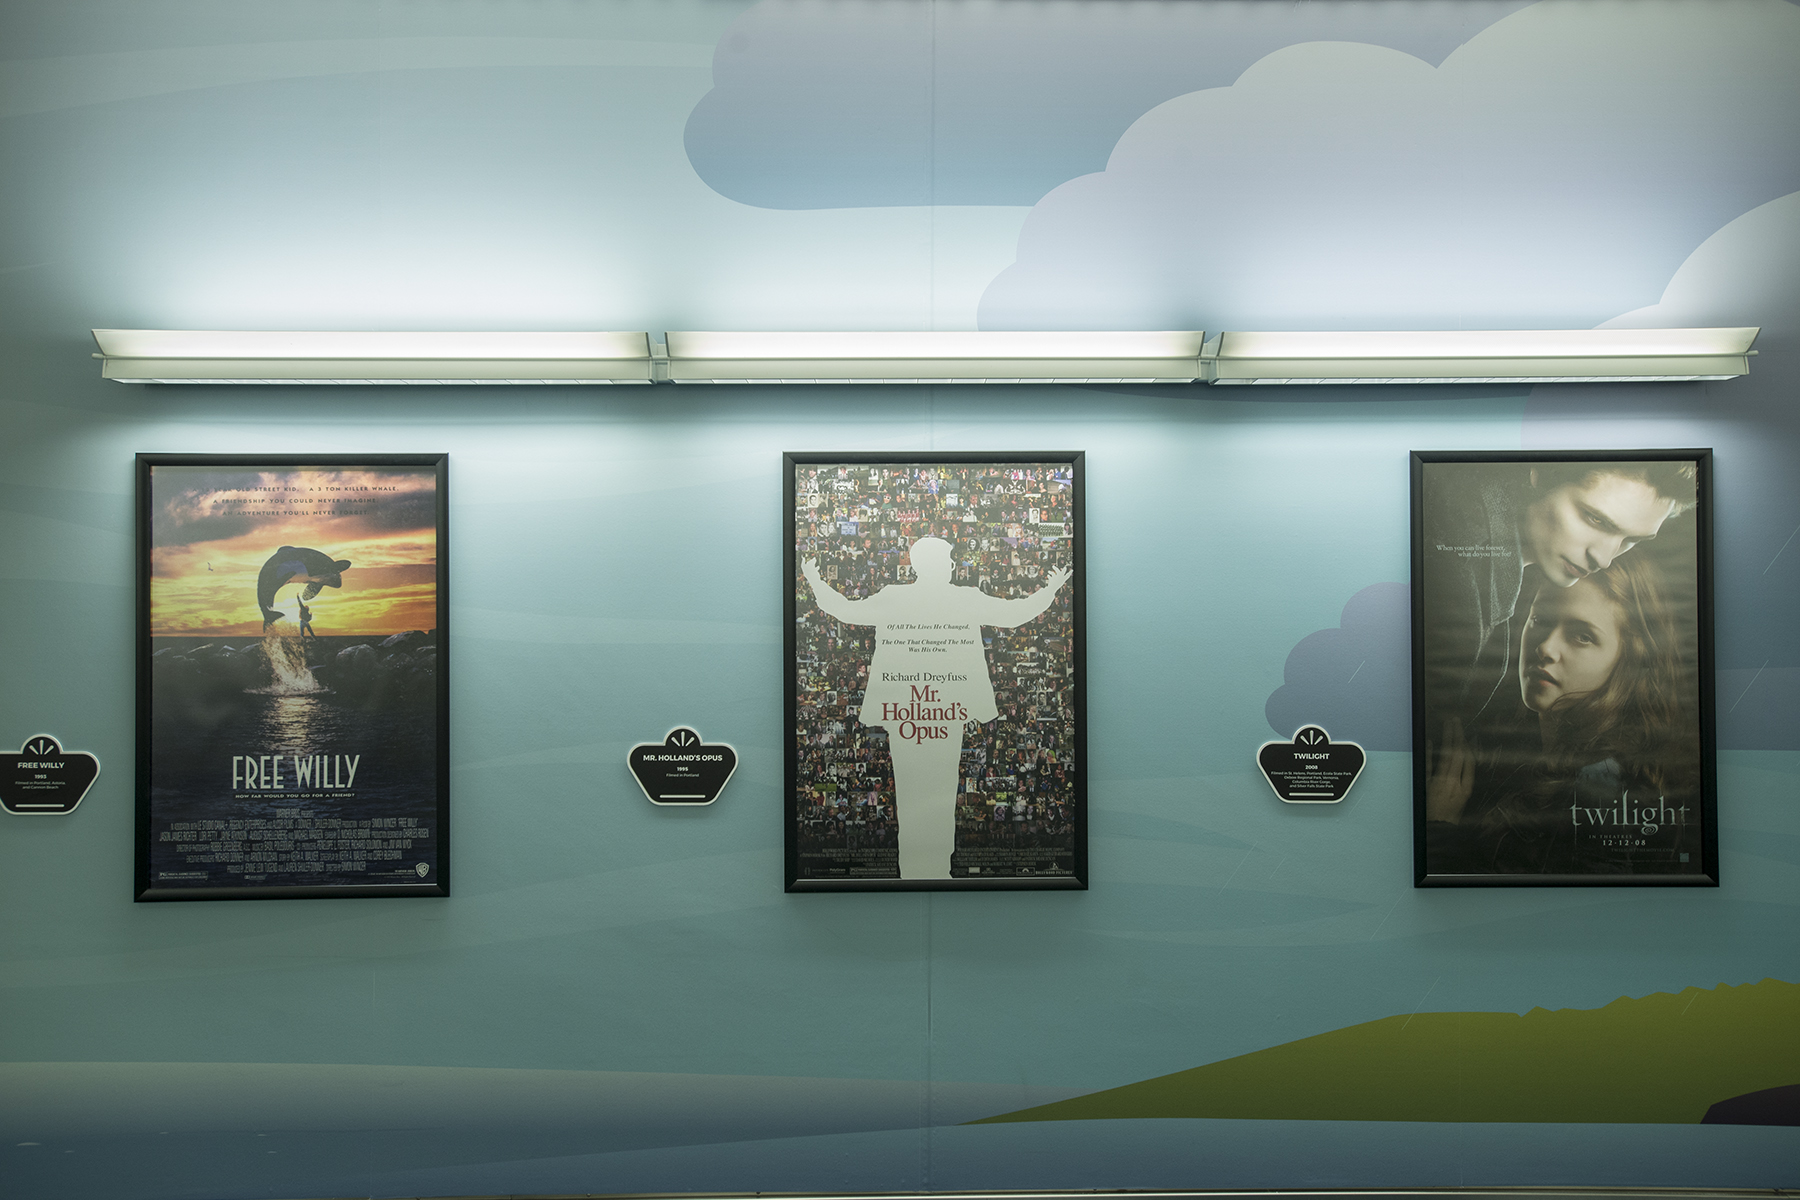 Expansive Oregon Film History Mural + Movie Poster Exhibit